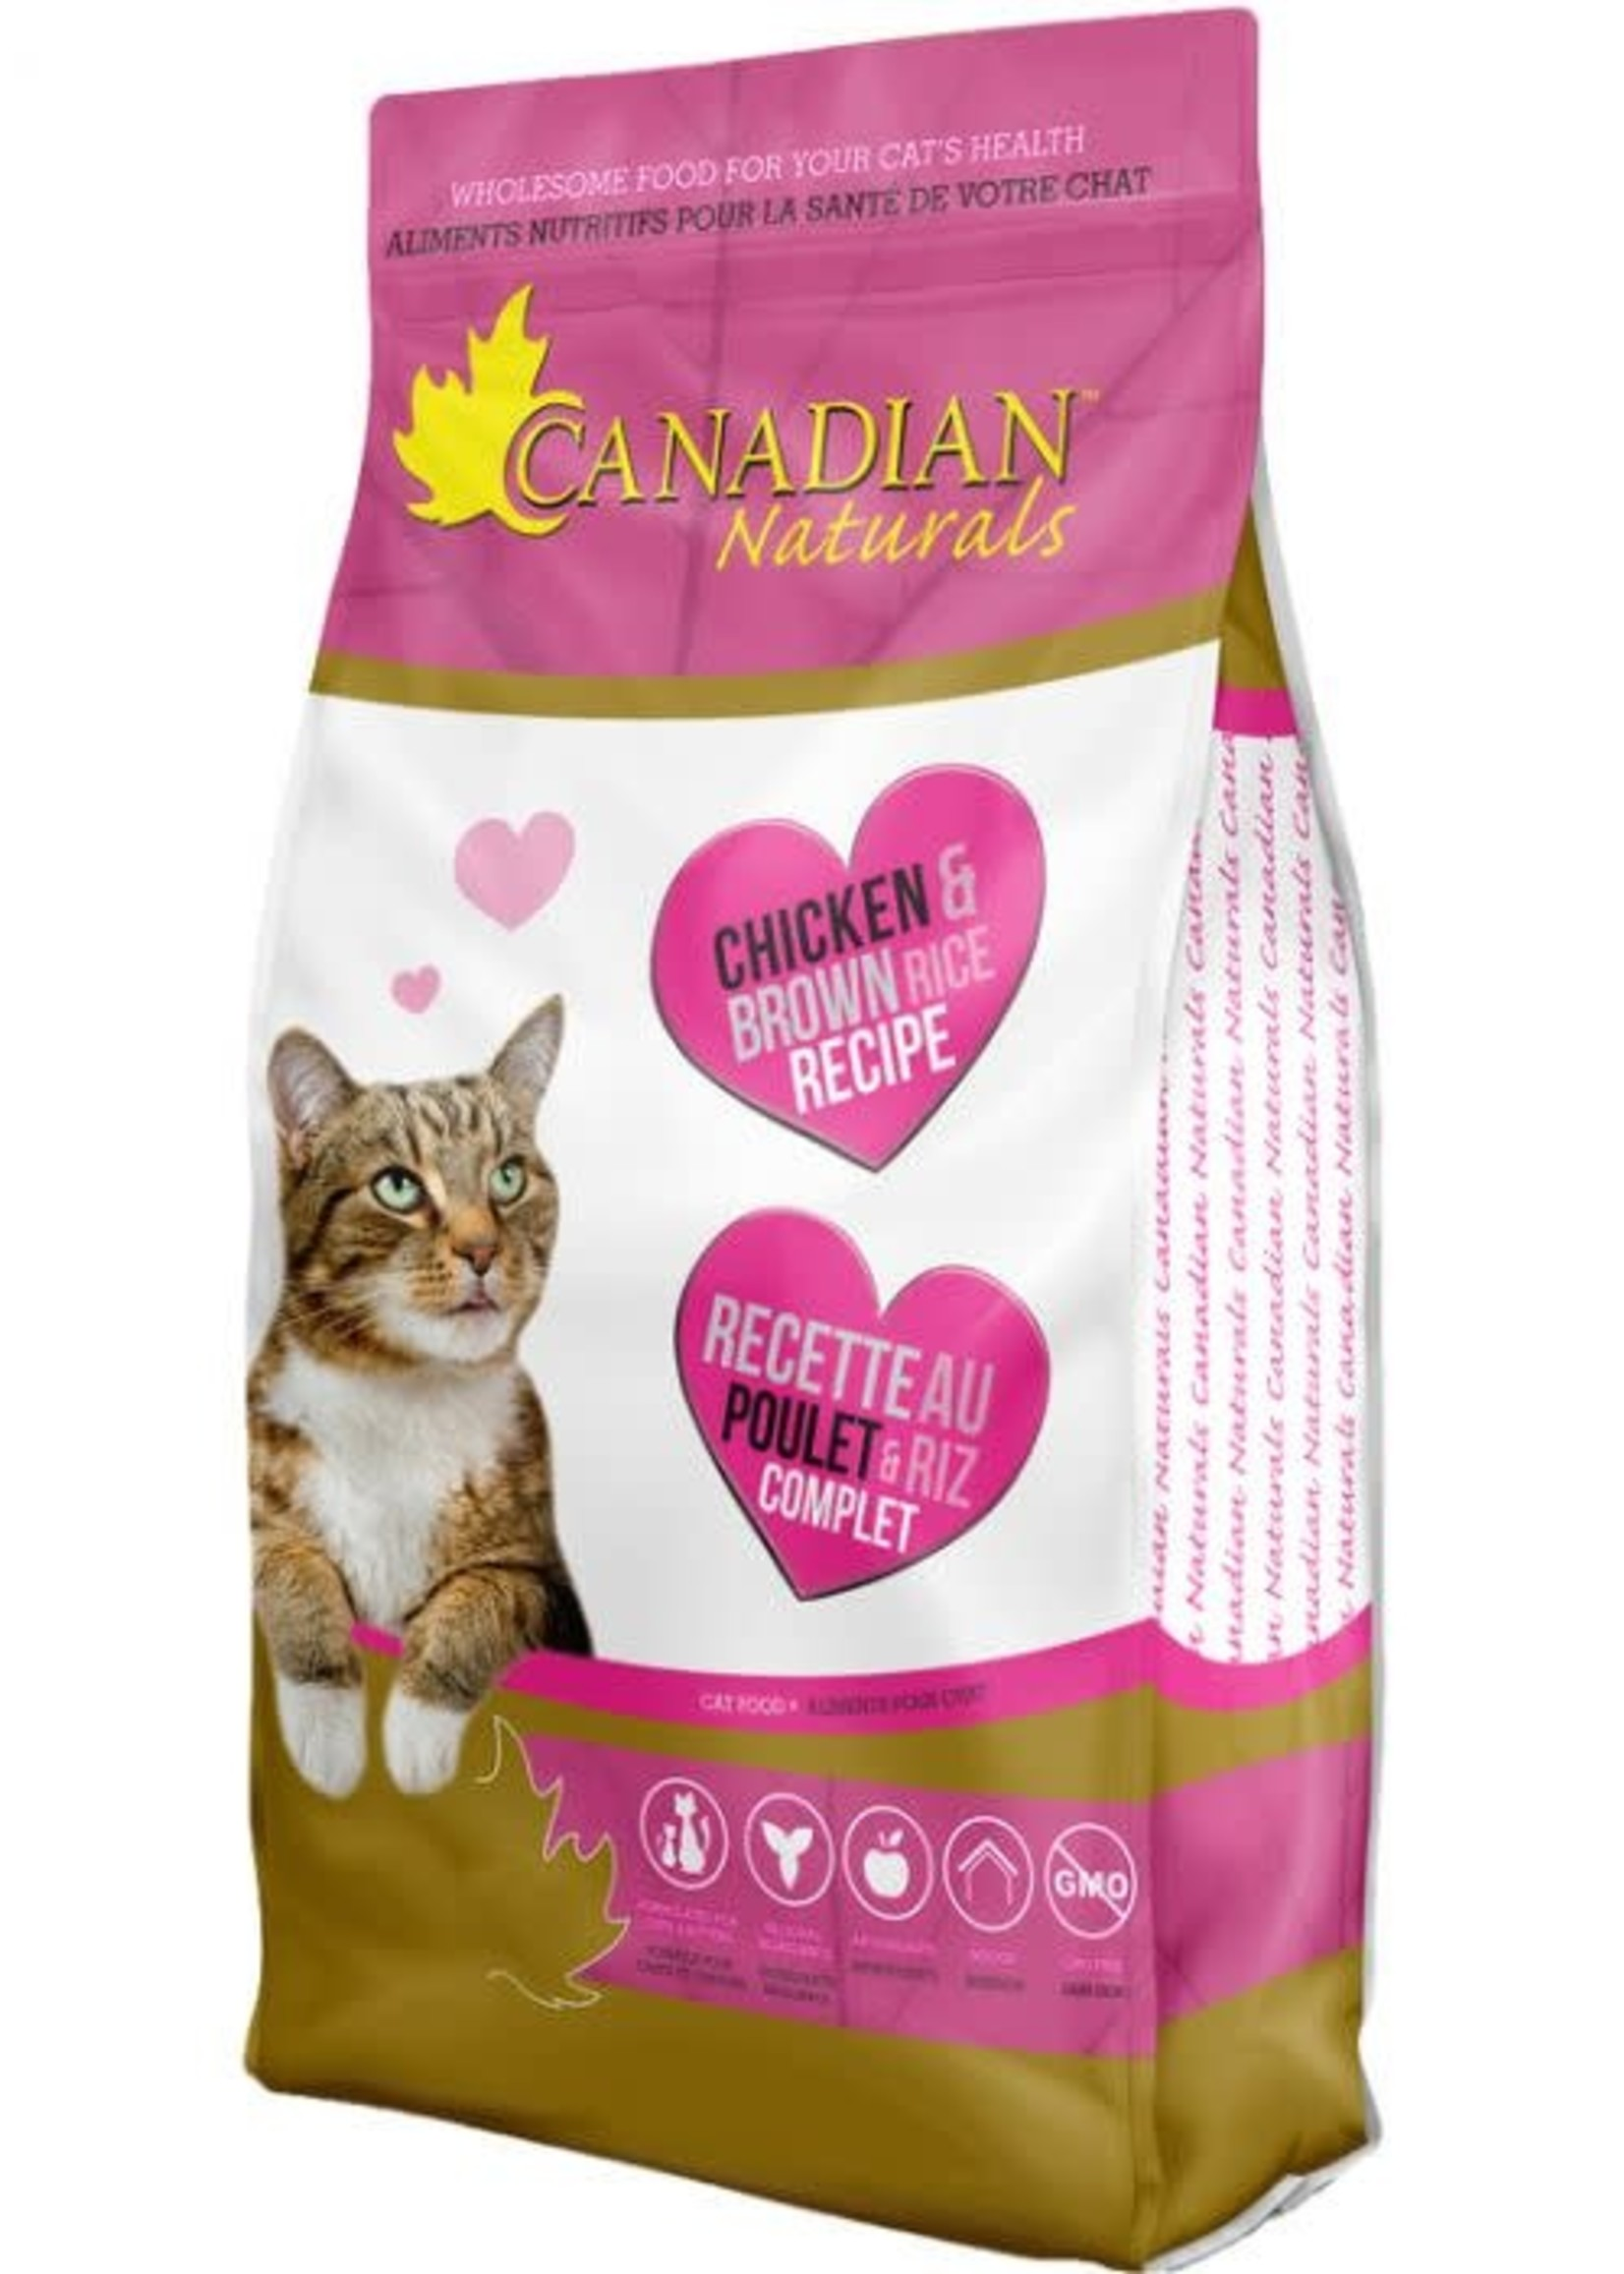 Canadian Naturals® CANADIAN NATURALS CHICKEN & BROWN RICE RECIPE 3lbs